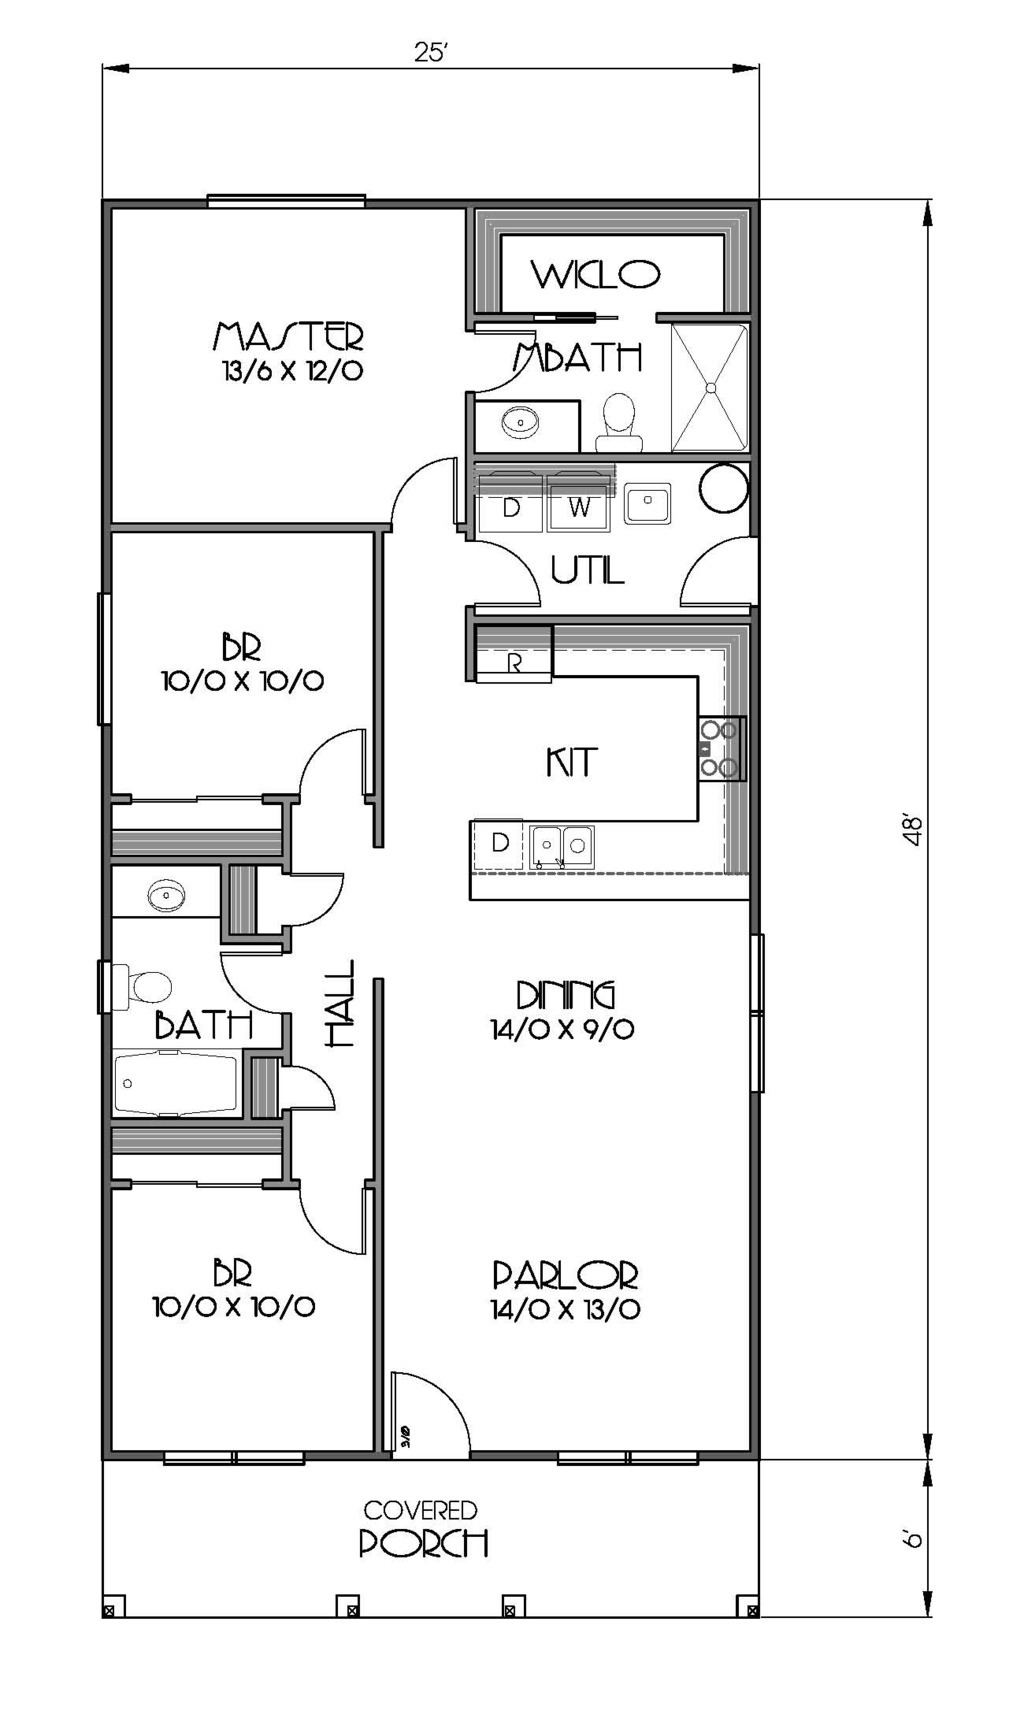 House Plans Cabin Style Beautiful Modern 1200 Sq Ft Floor Plan Cabin Style House 2 Bed 1 00